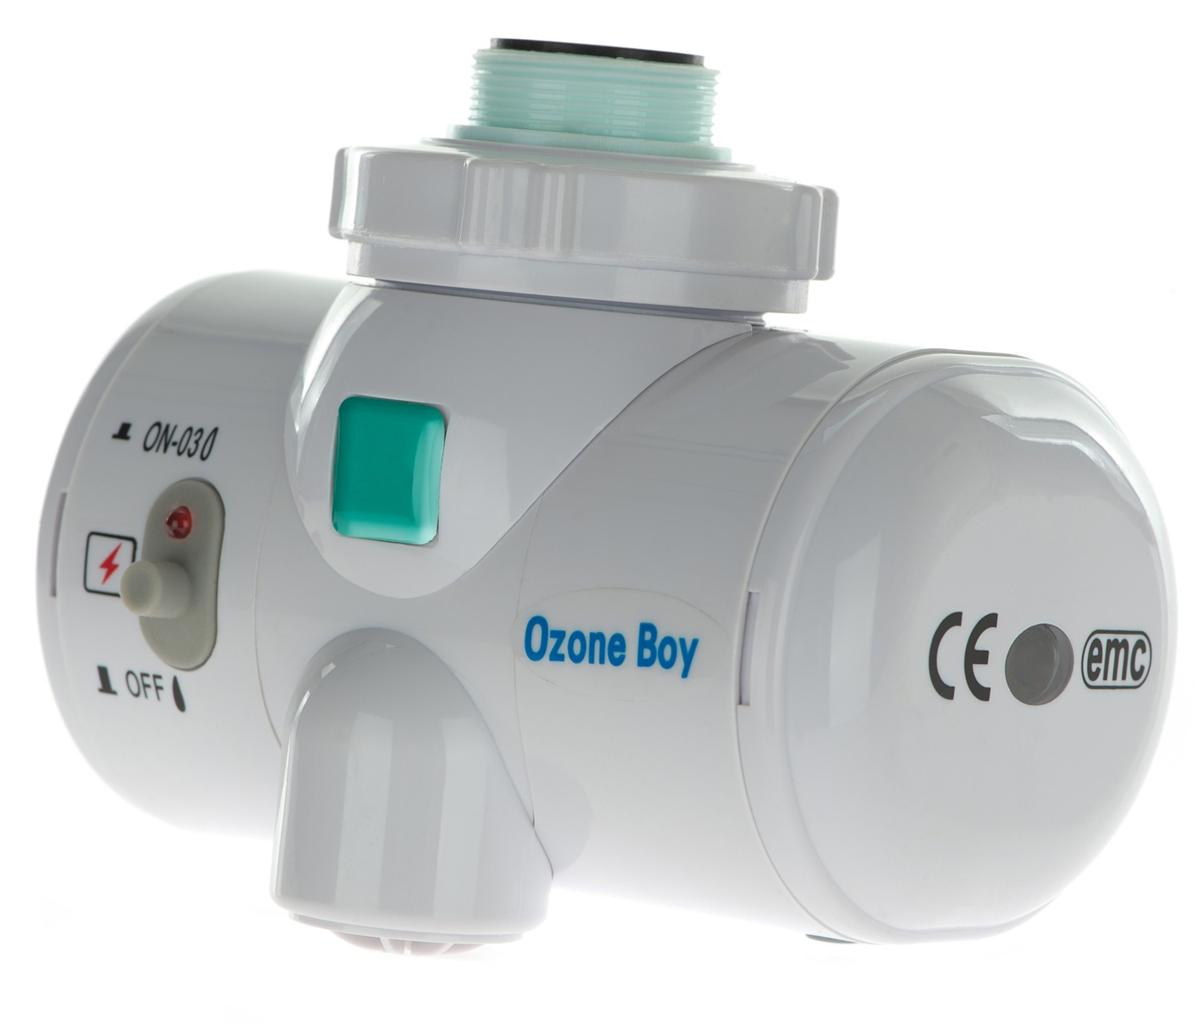 ozone boy water purifier and sanitizer